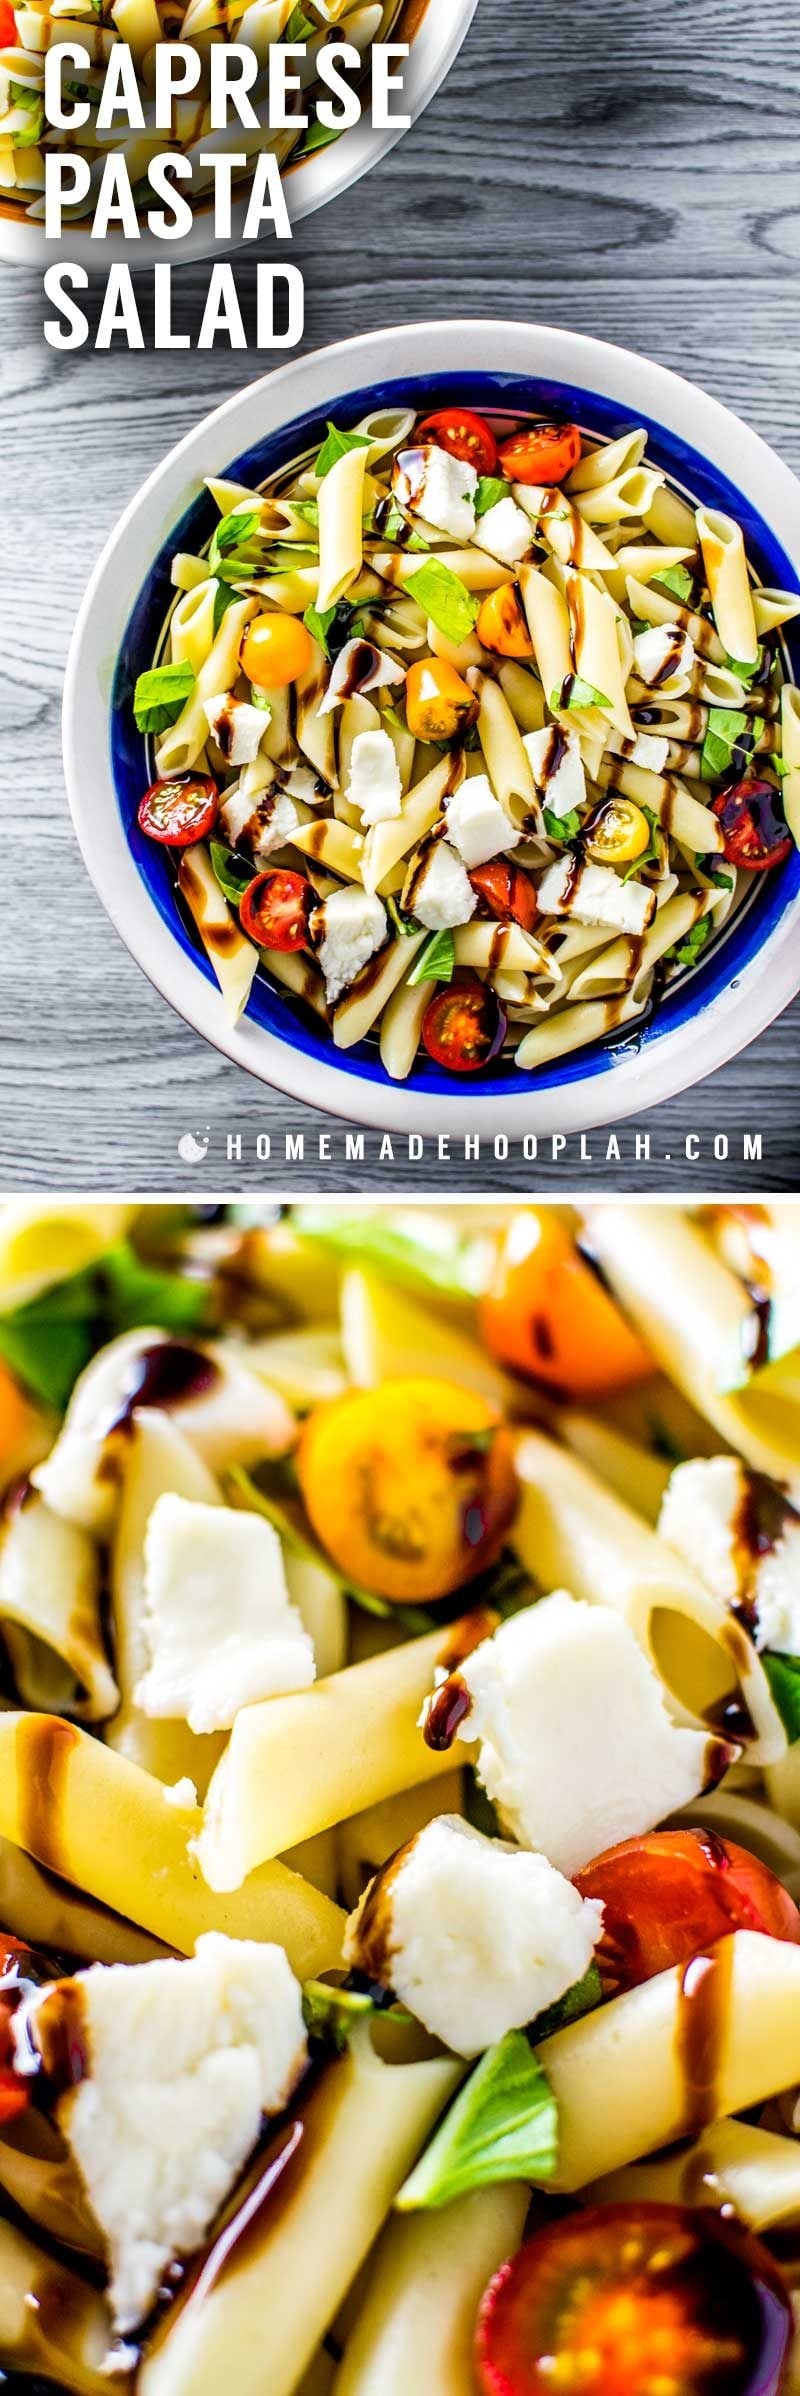 A caprese pasta salad that's about 586 calories per serving.